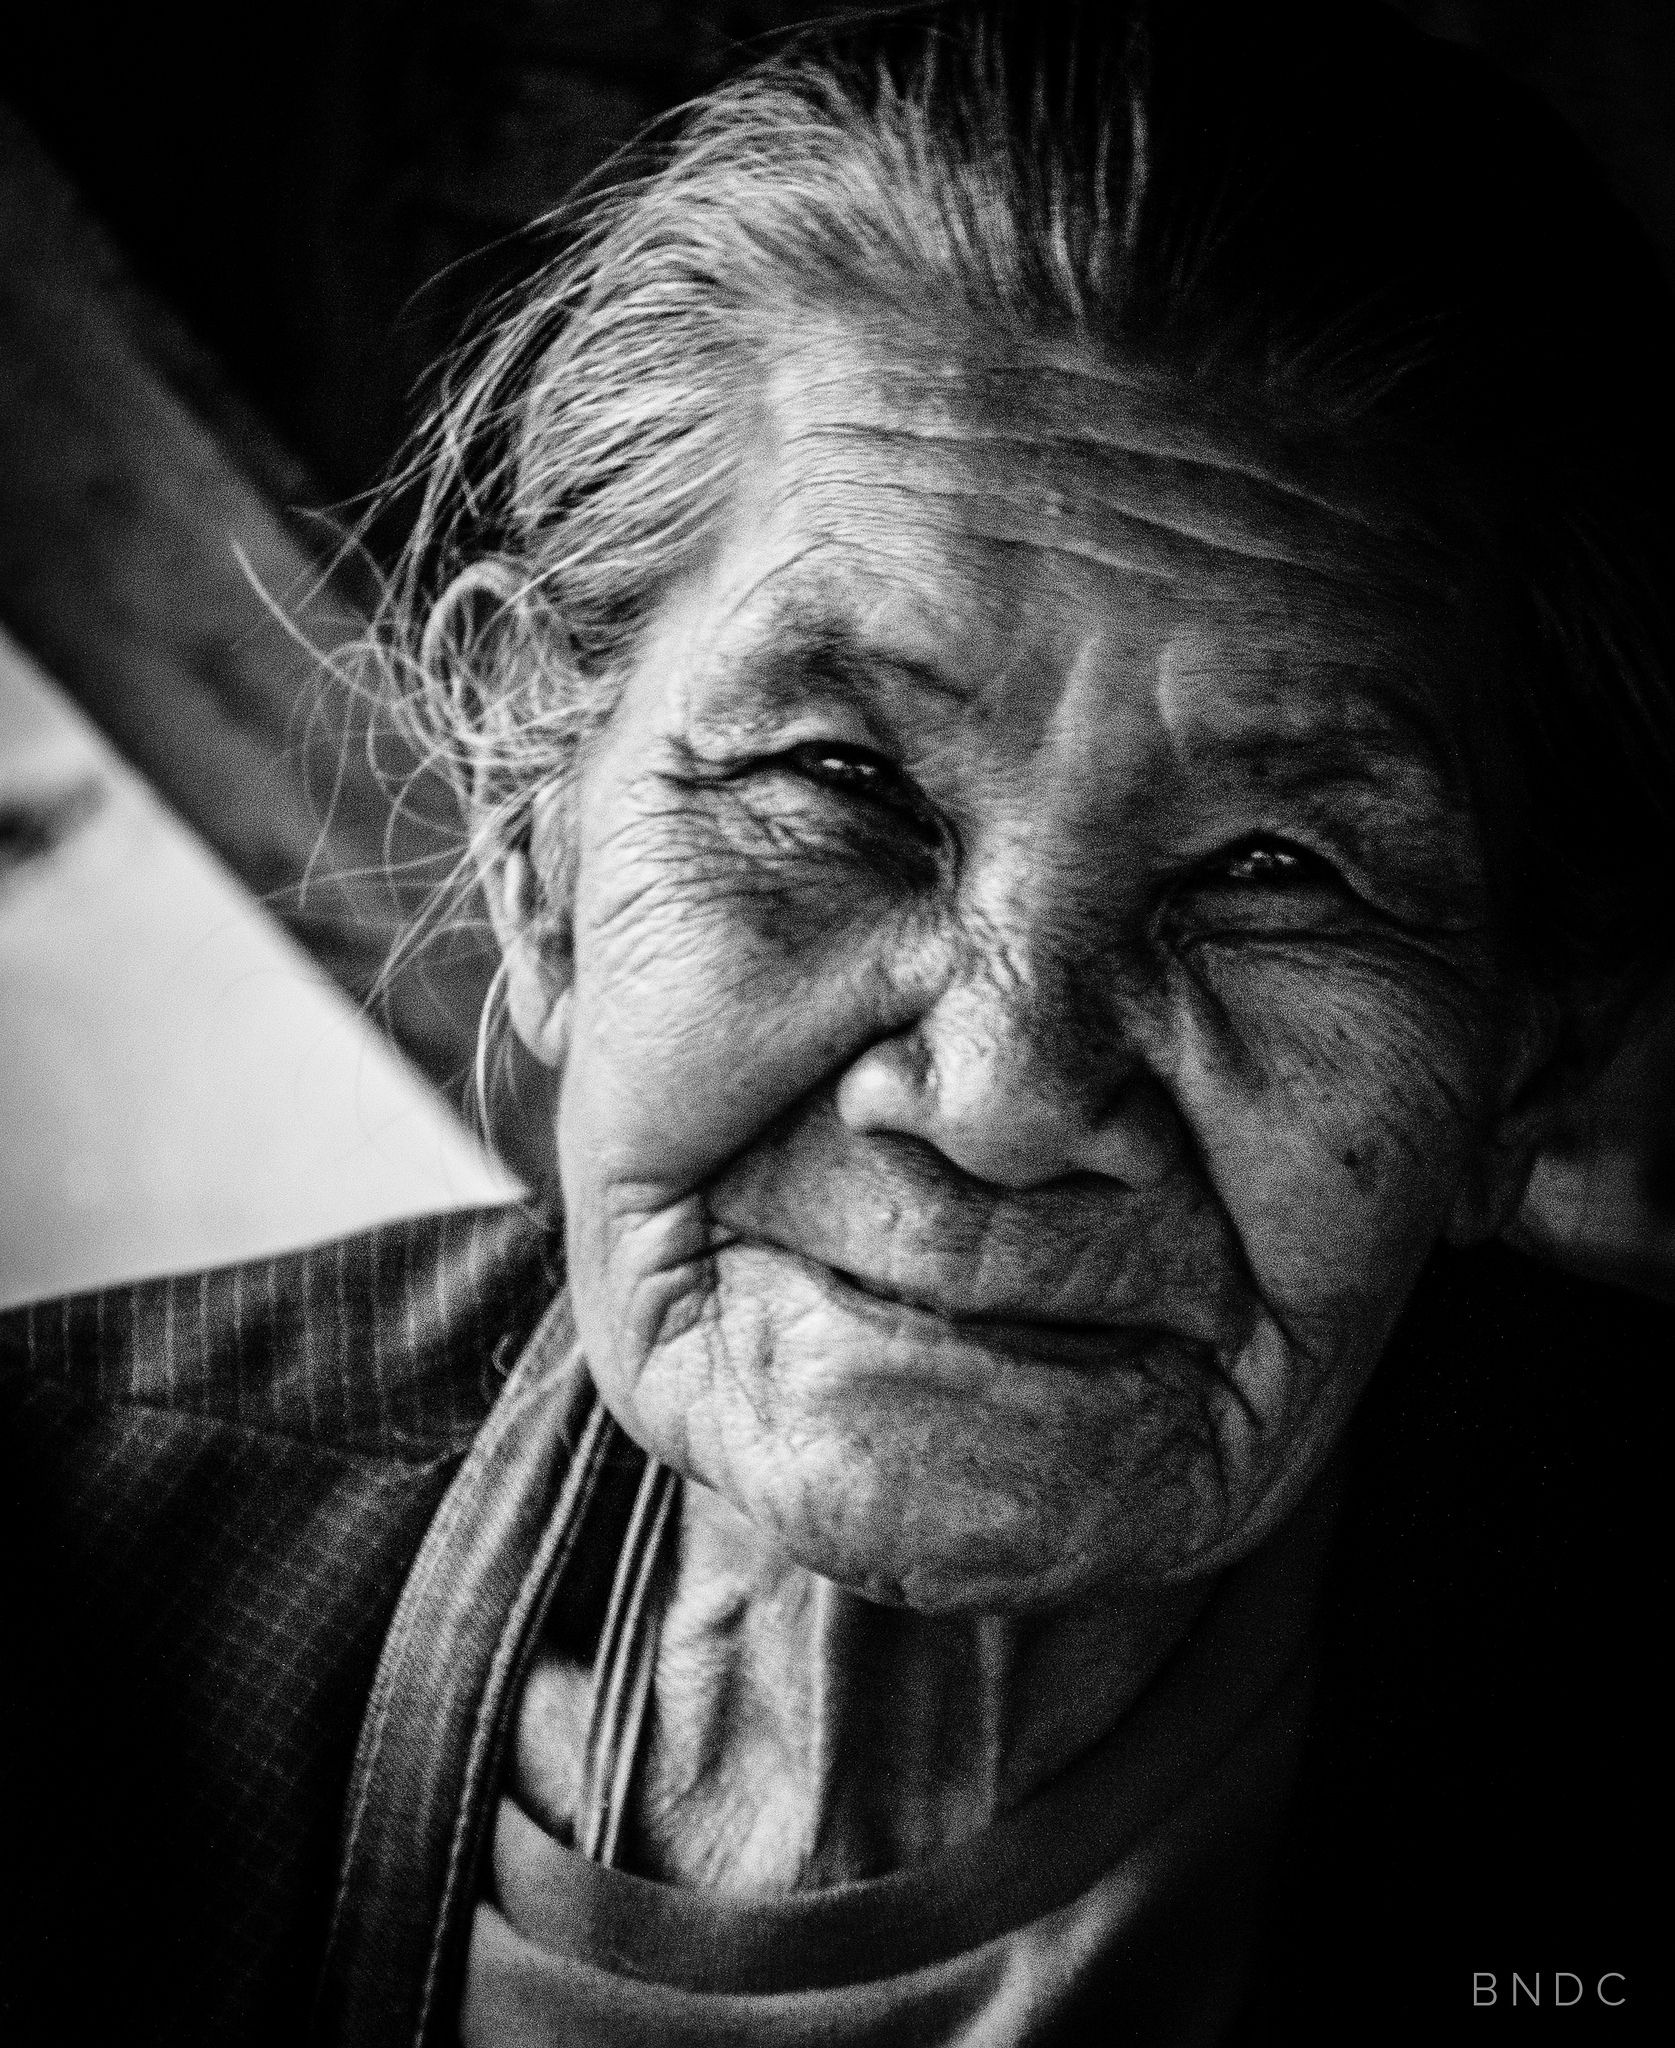 Old woman portrait black and white monochrome happy smile manila street happiness will never come to those who dont appreciate what they already